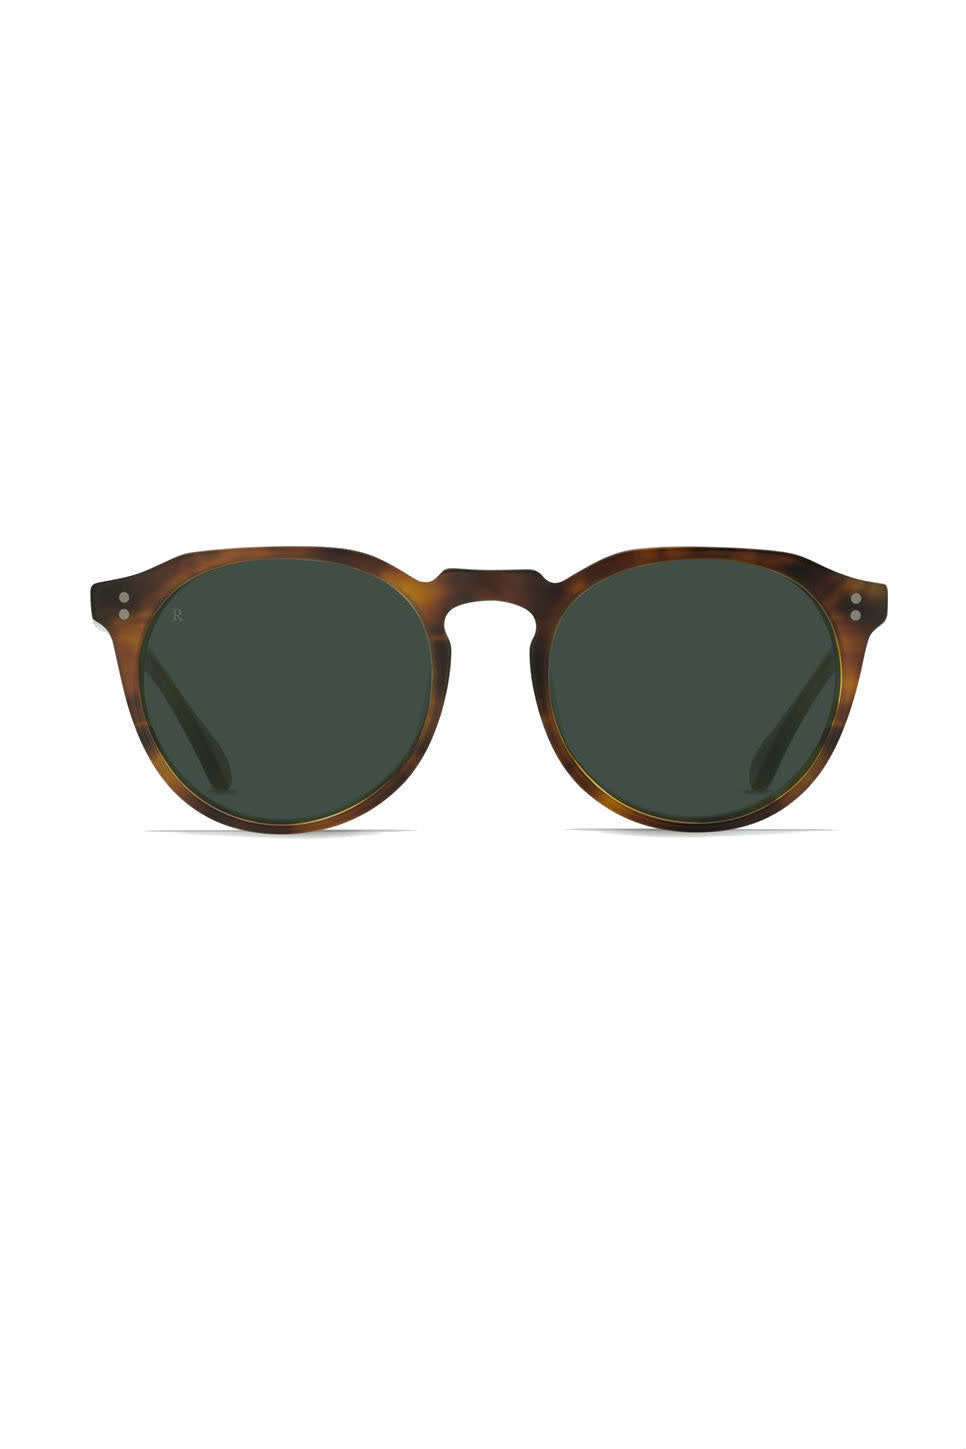 RAEN - Remmy 52 - Split Finish Rootbeer/Green - Front